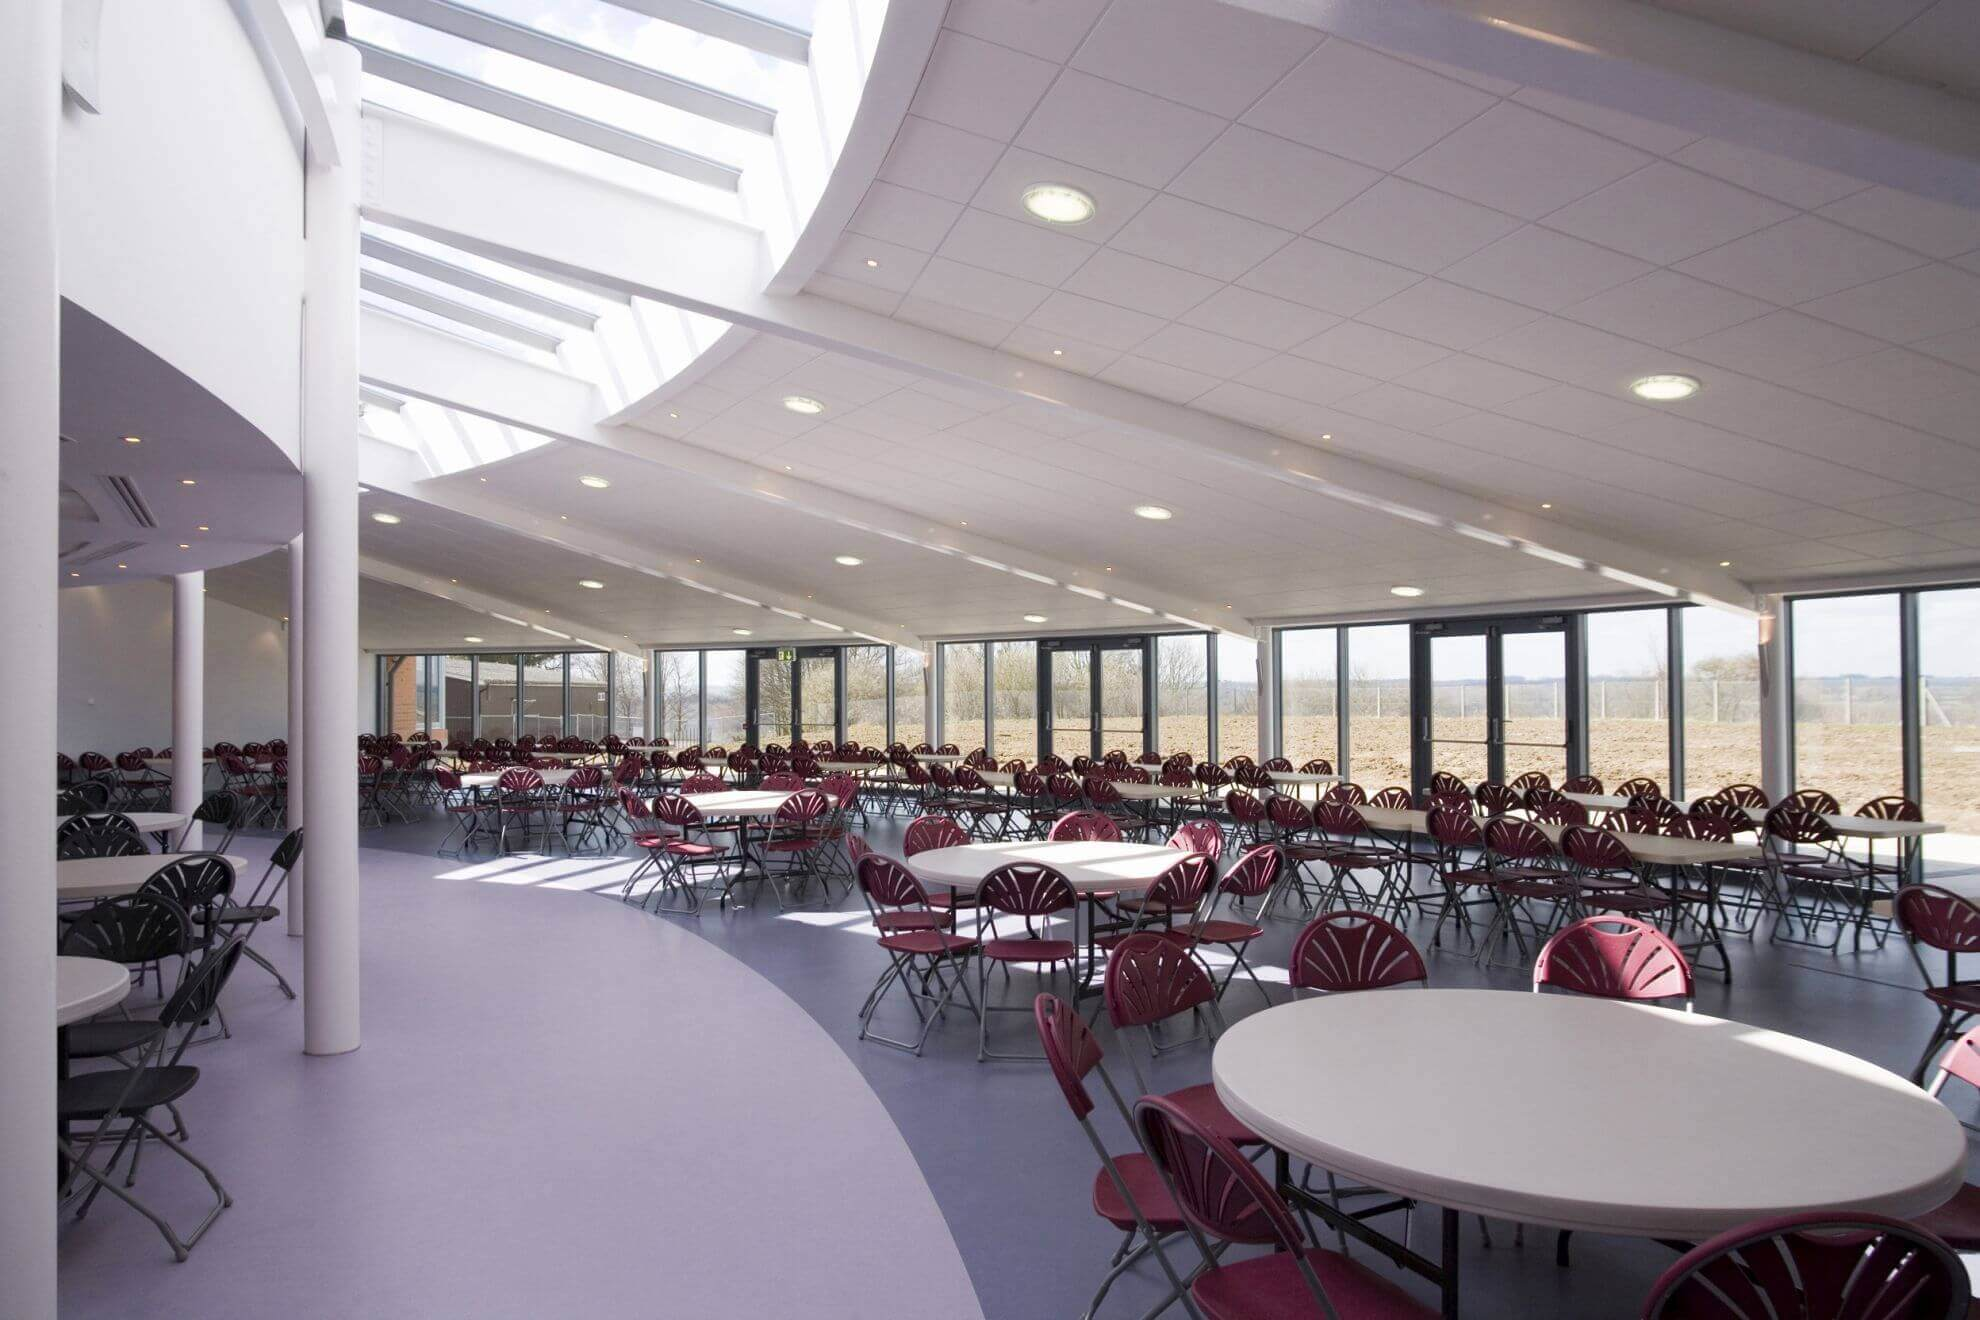 A Bedford Modern School Hall Interior 2